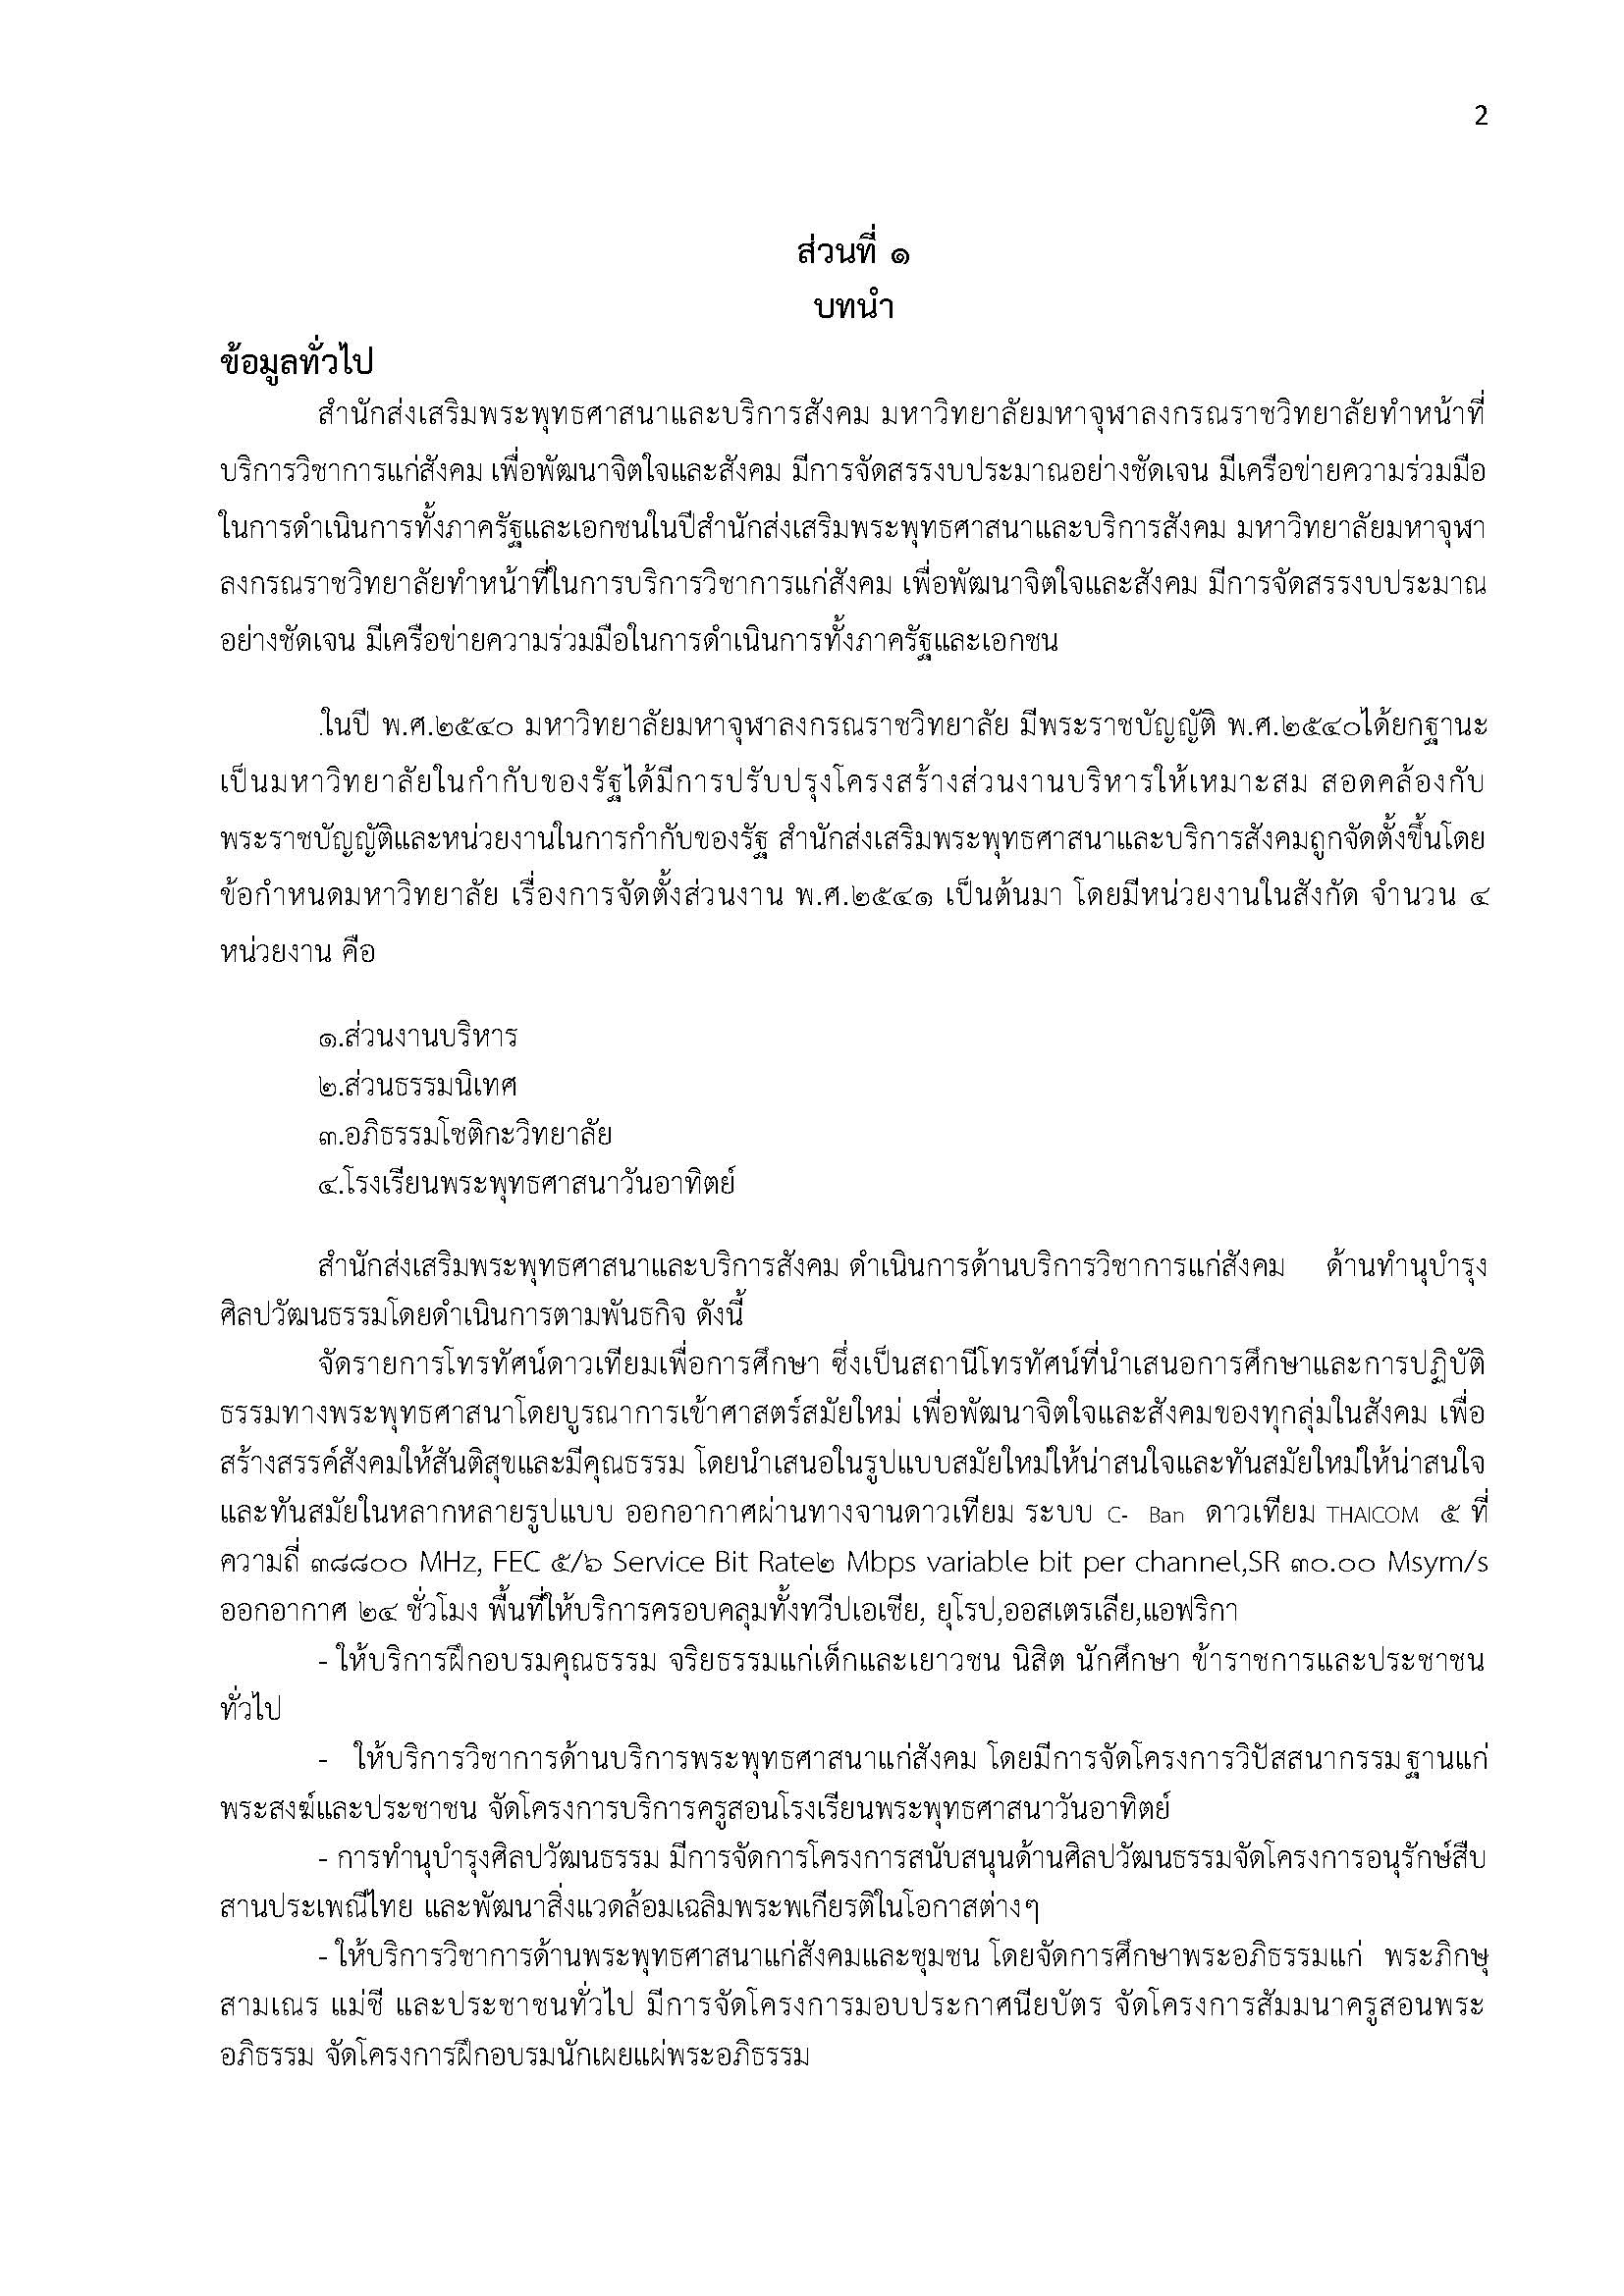 Gc_Page_02